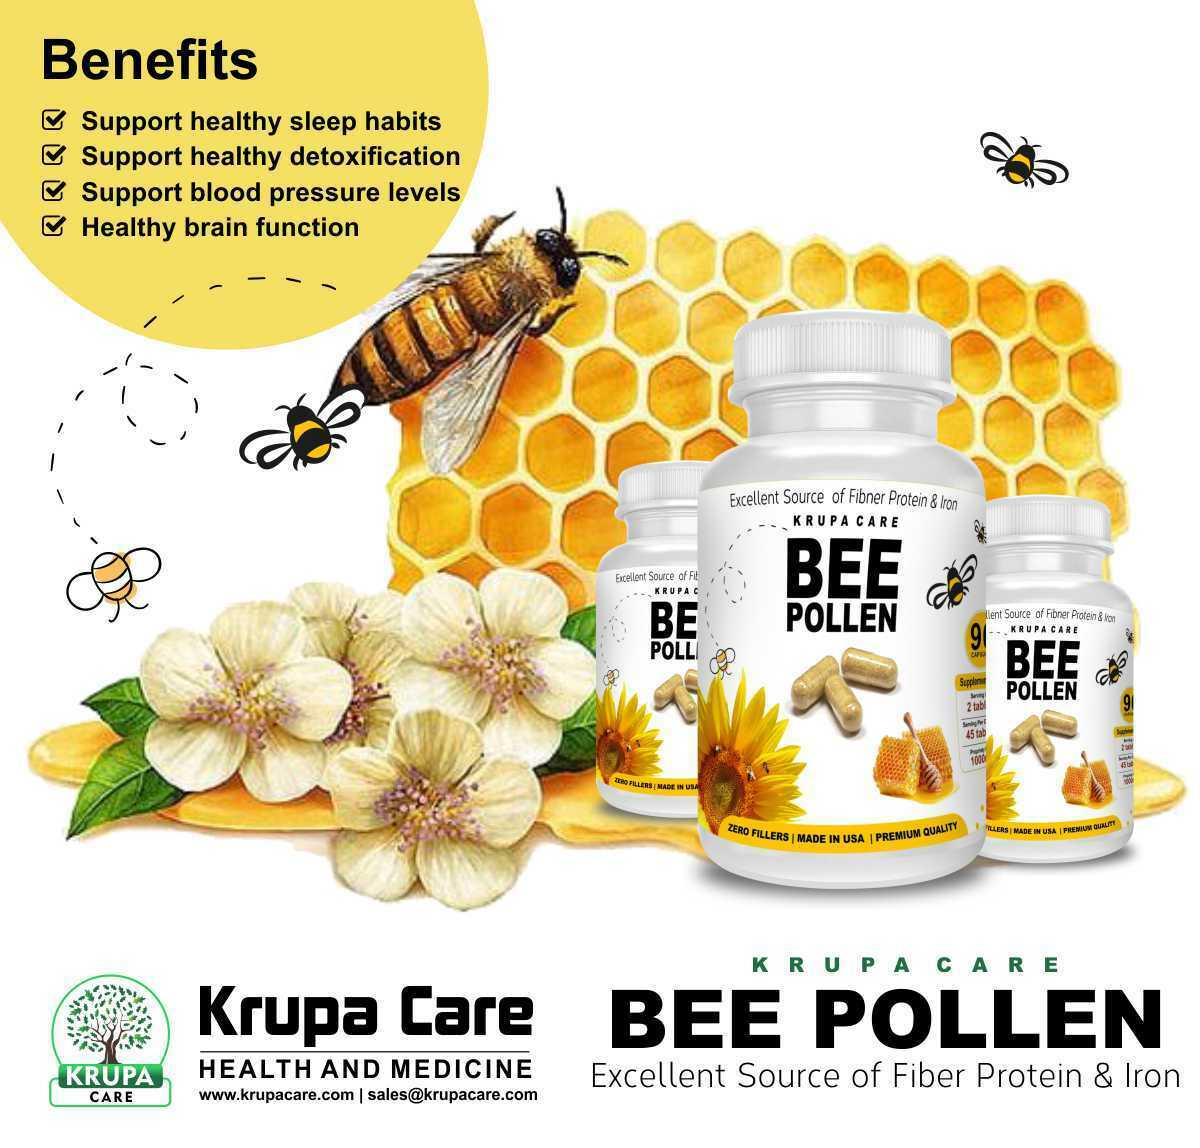 Krupacare Bee Pollen capsual500mg,Weight Loss,B-complex,Vit A,C,E.Made in USA 90 2